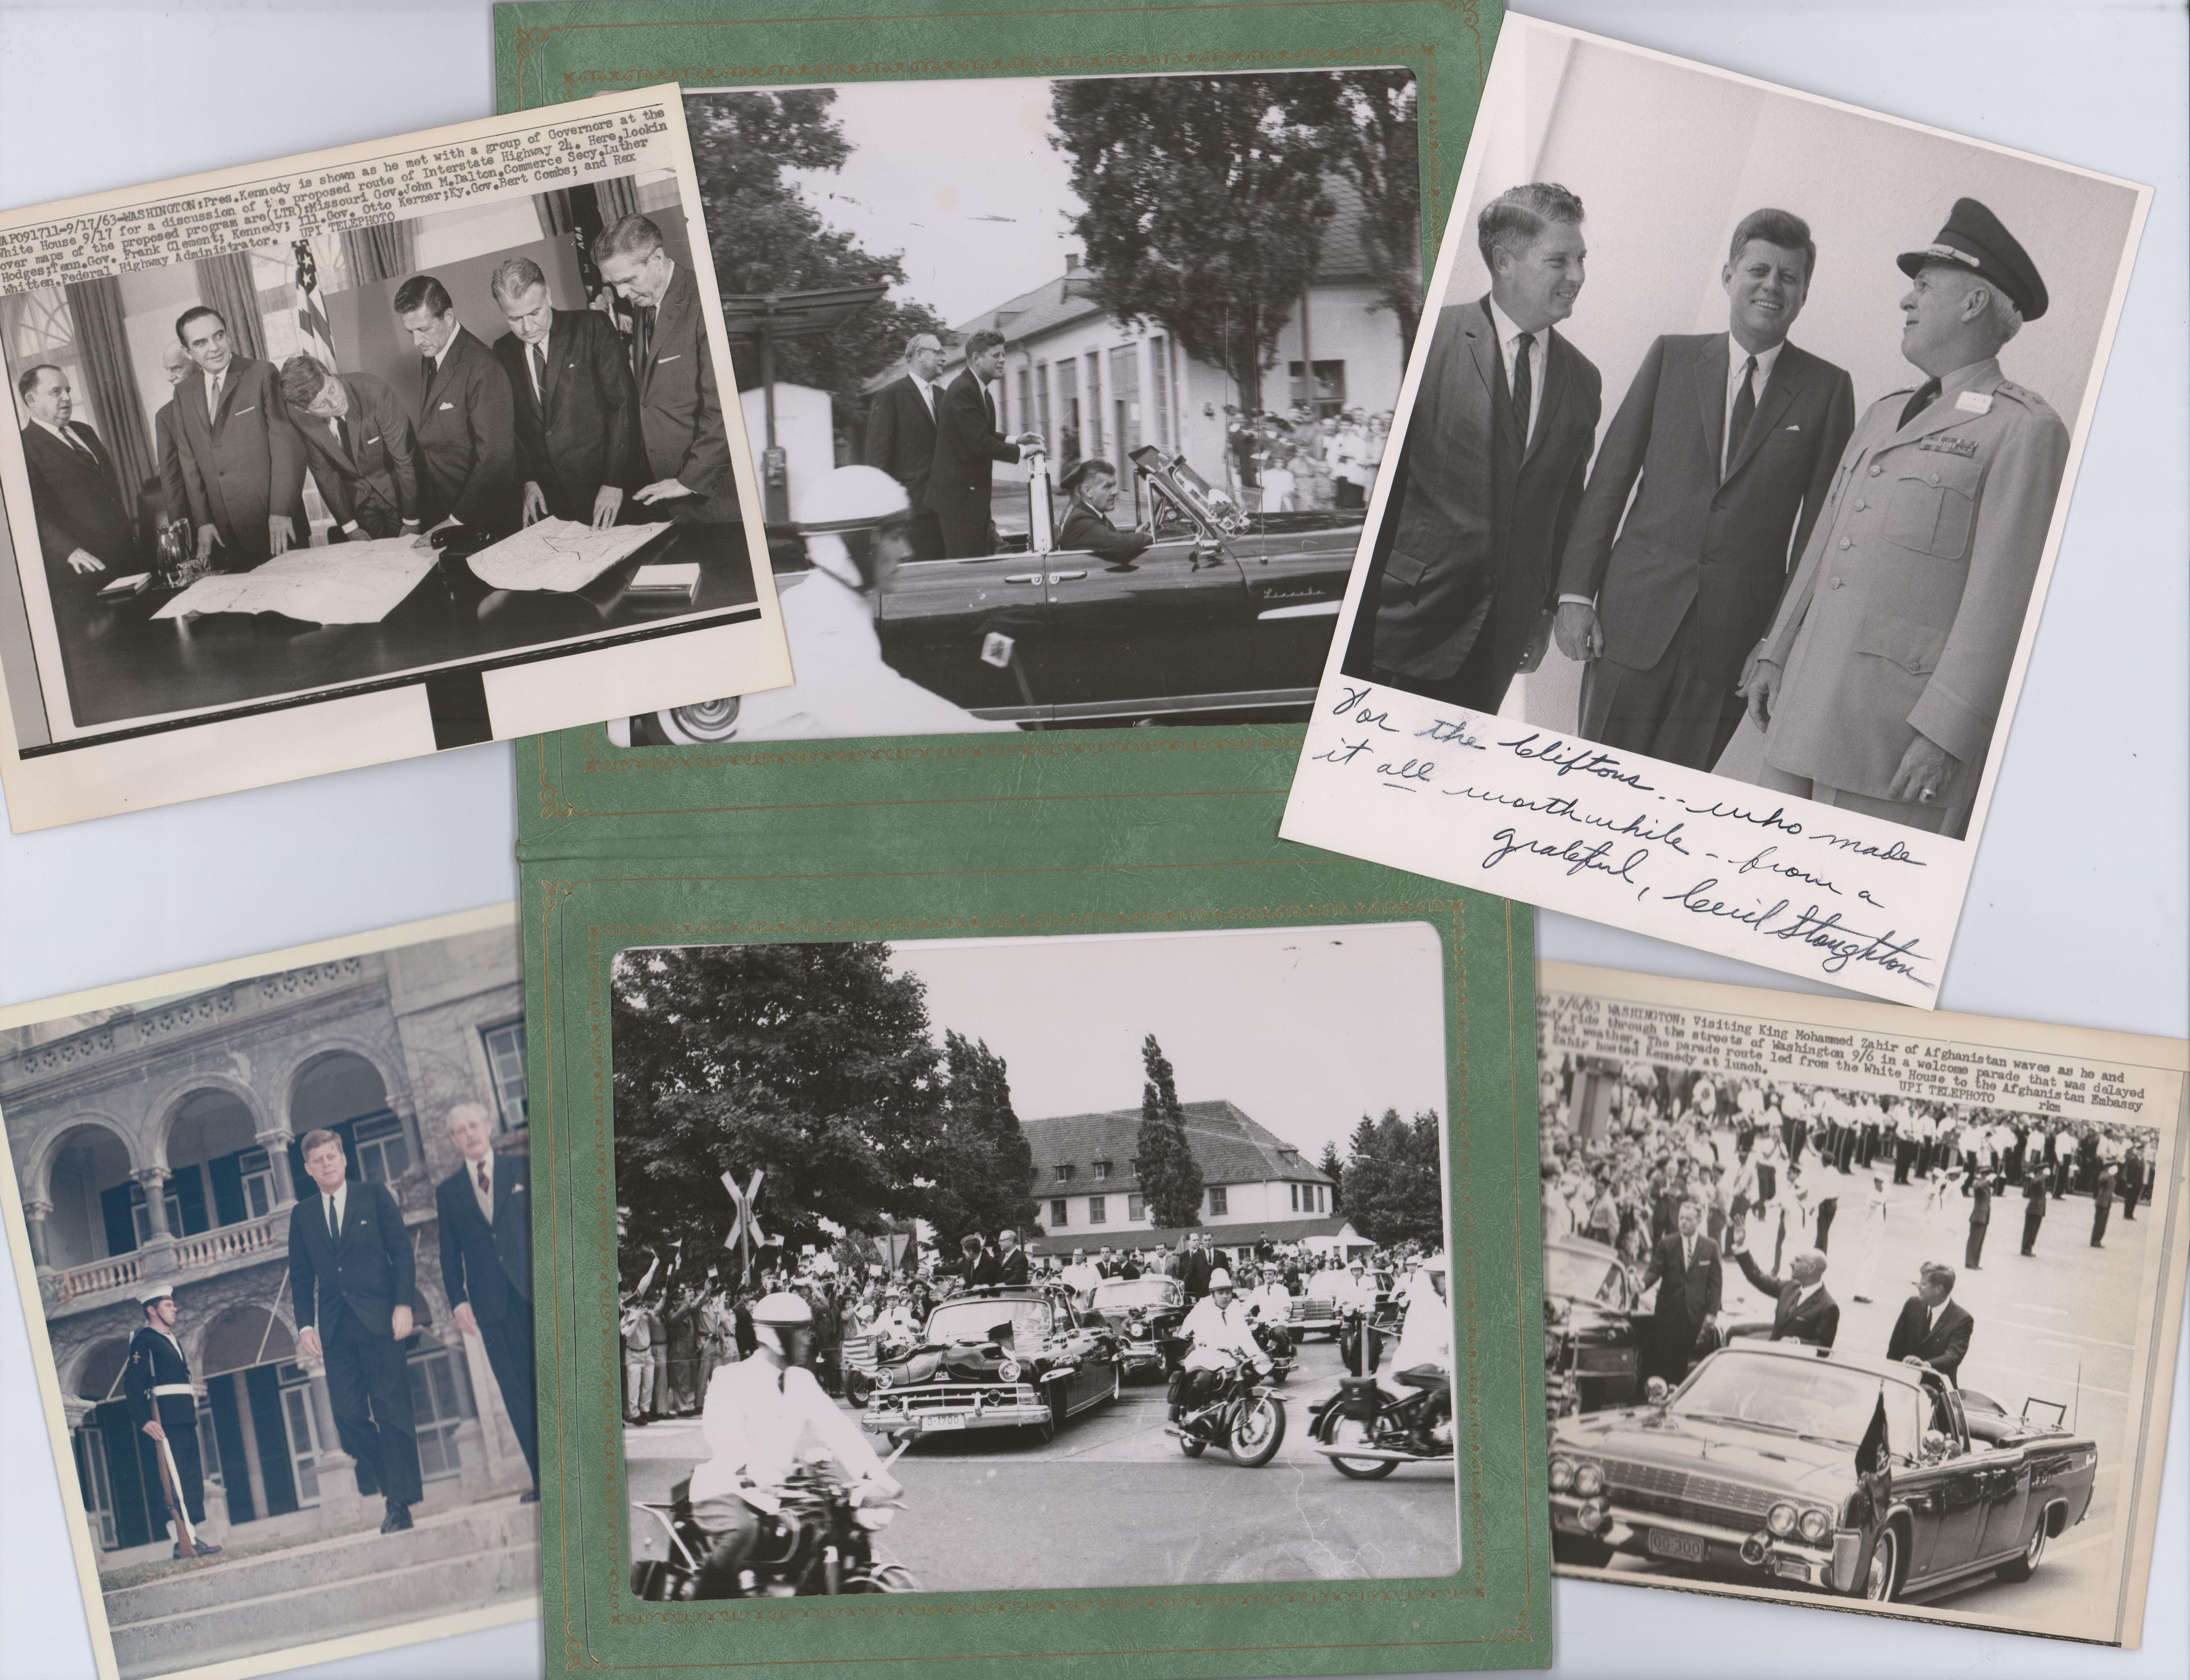 President Kennedy Photo Archive of Six 8 x 10 Photos